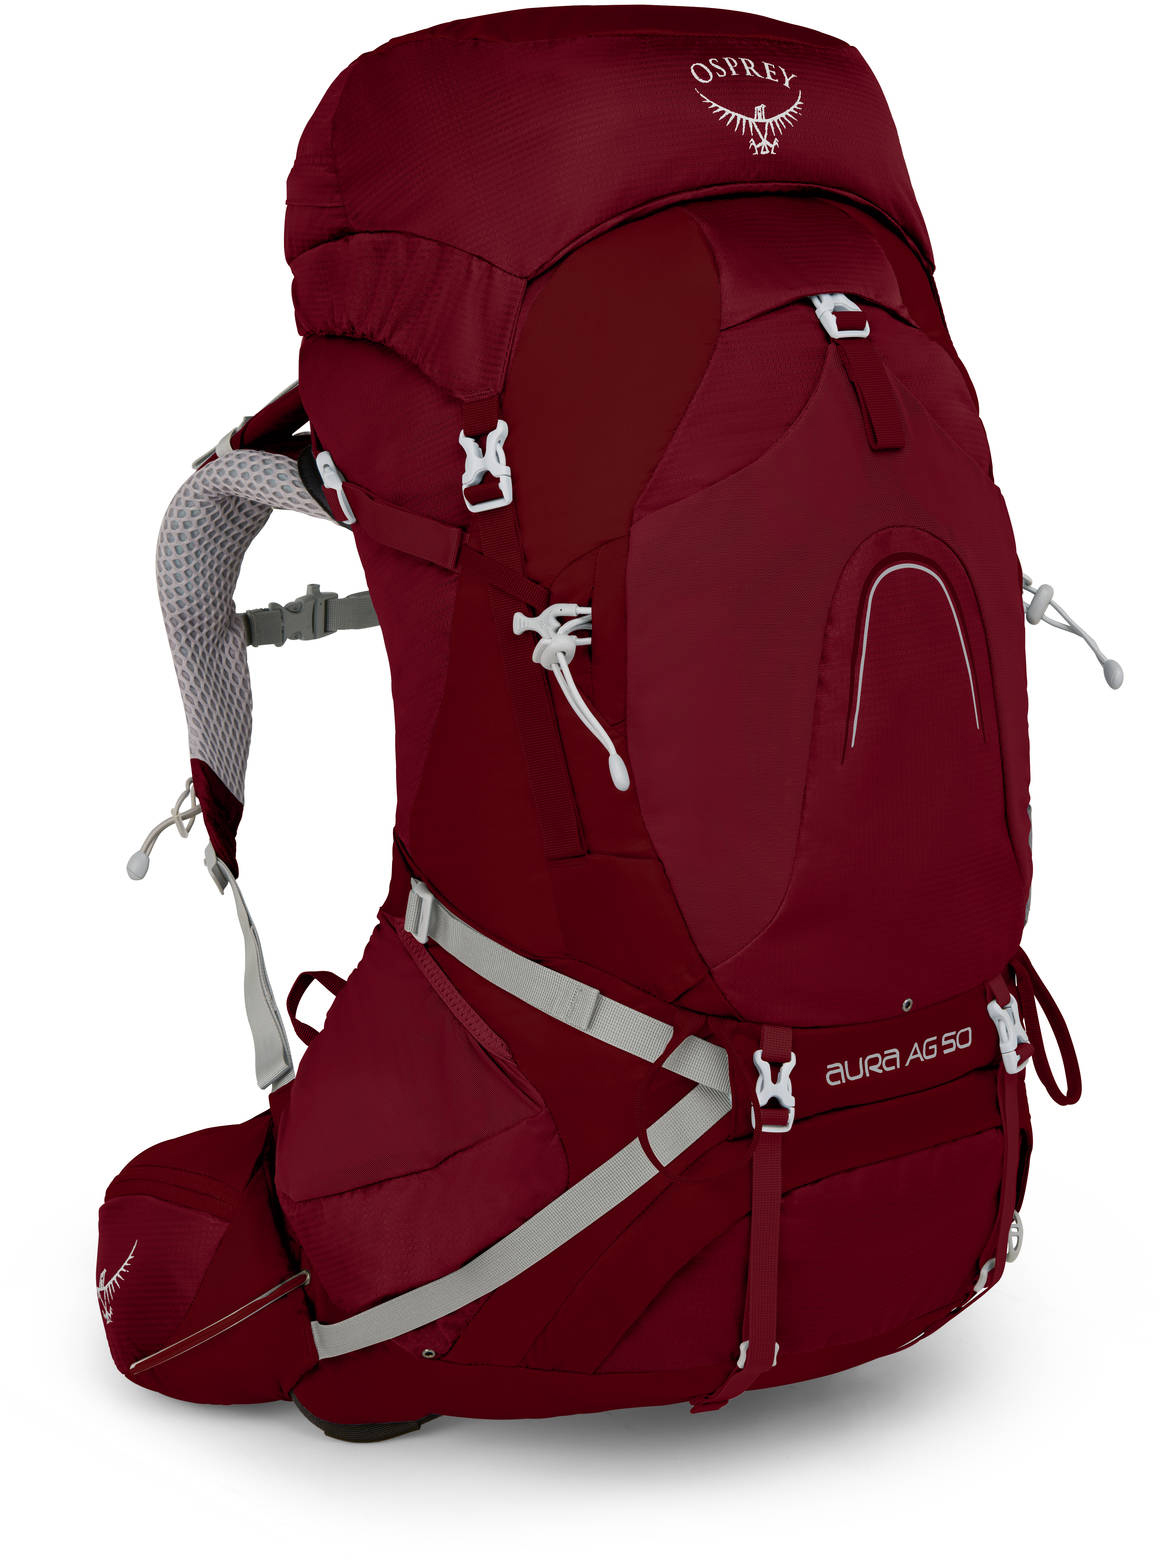 Туристические рюкзаки Рюкзак женский Osprey Aura AG 50 Women's Gamma Red W/M Aura_AG_50_S18_Side_Gamma_Red_web.jpg